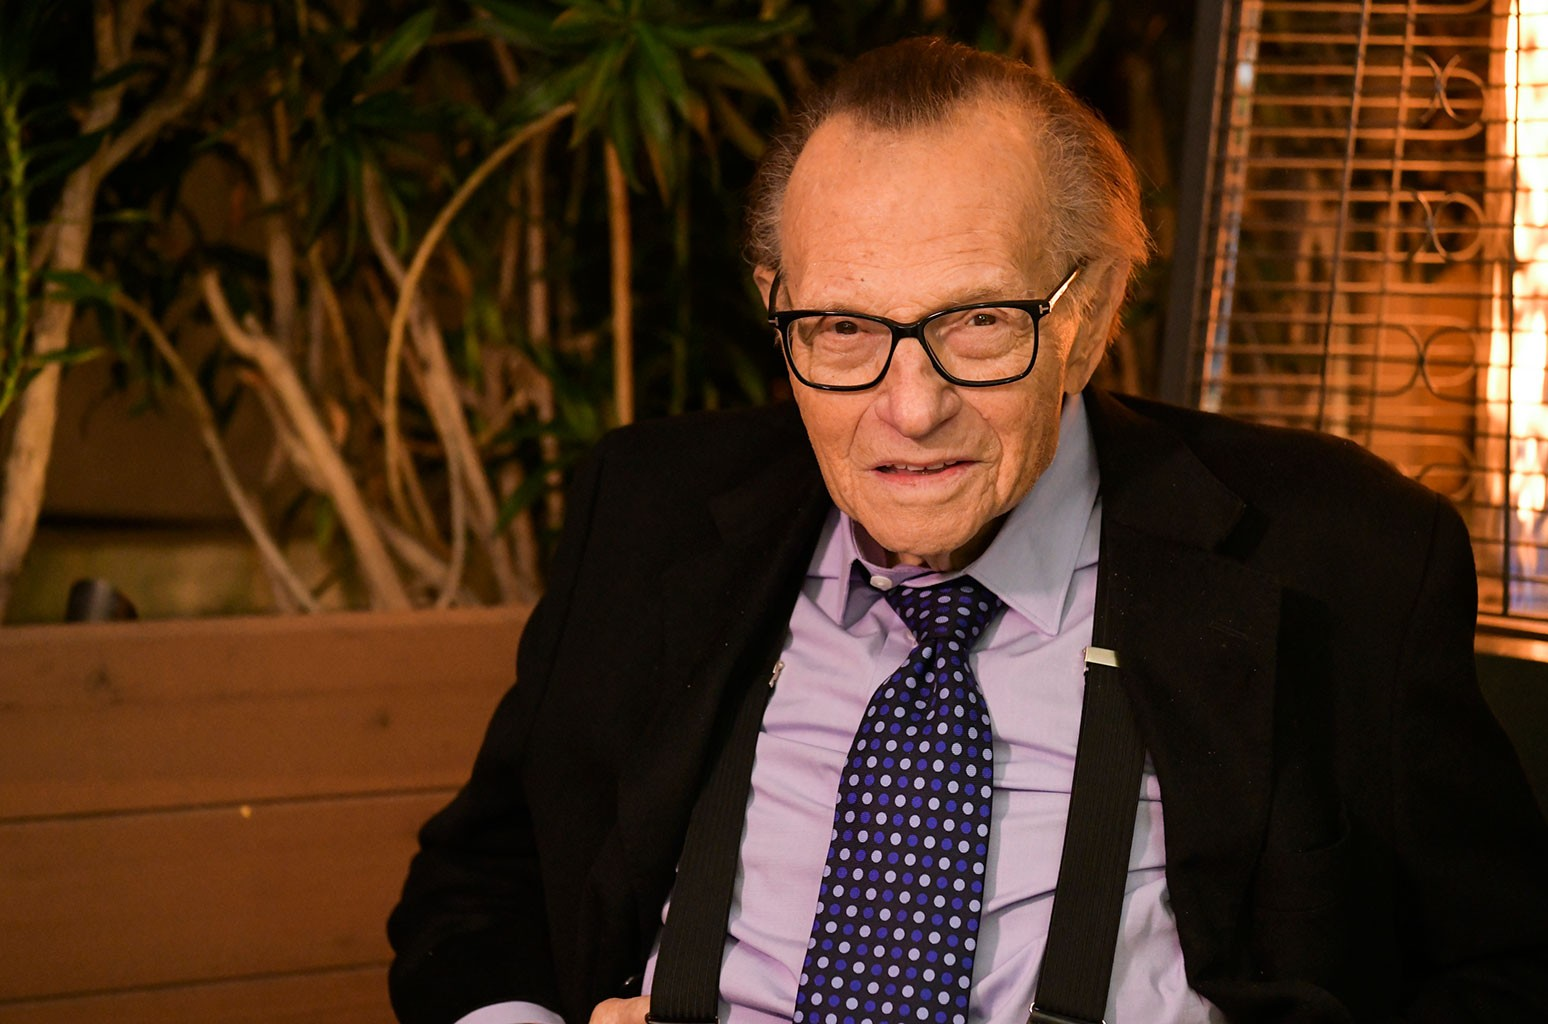 50 Cent, Celine Dion, Andrea Bocelli & More Pay Tribute to Larry King